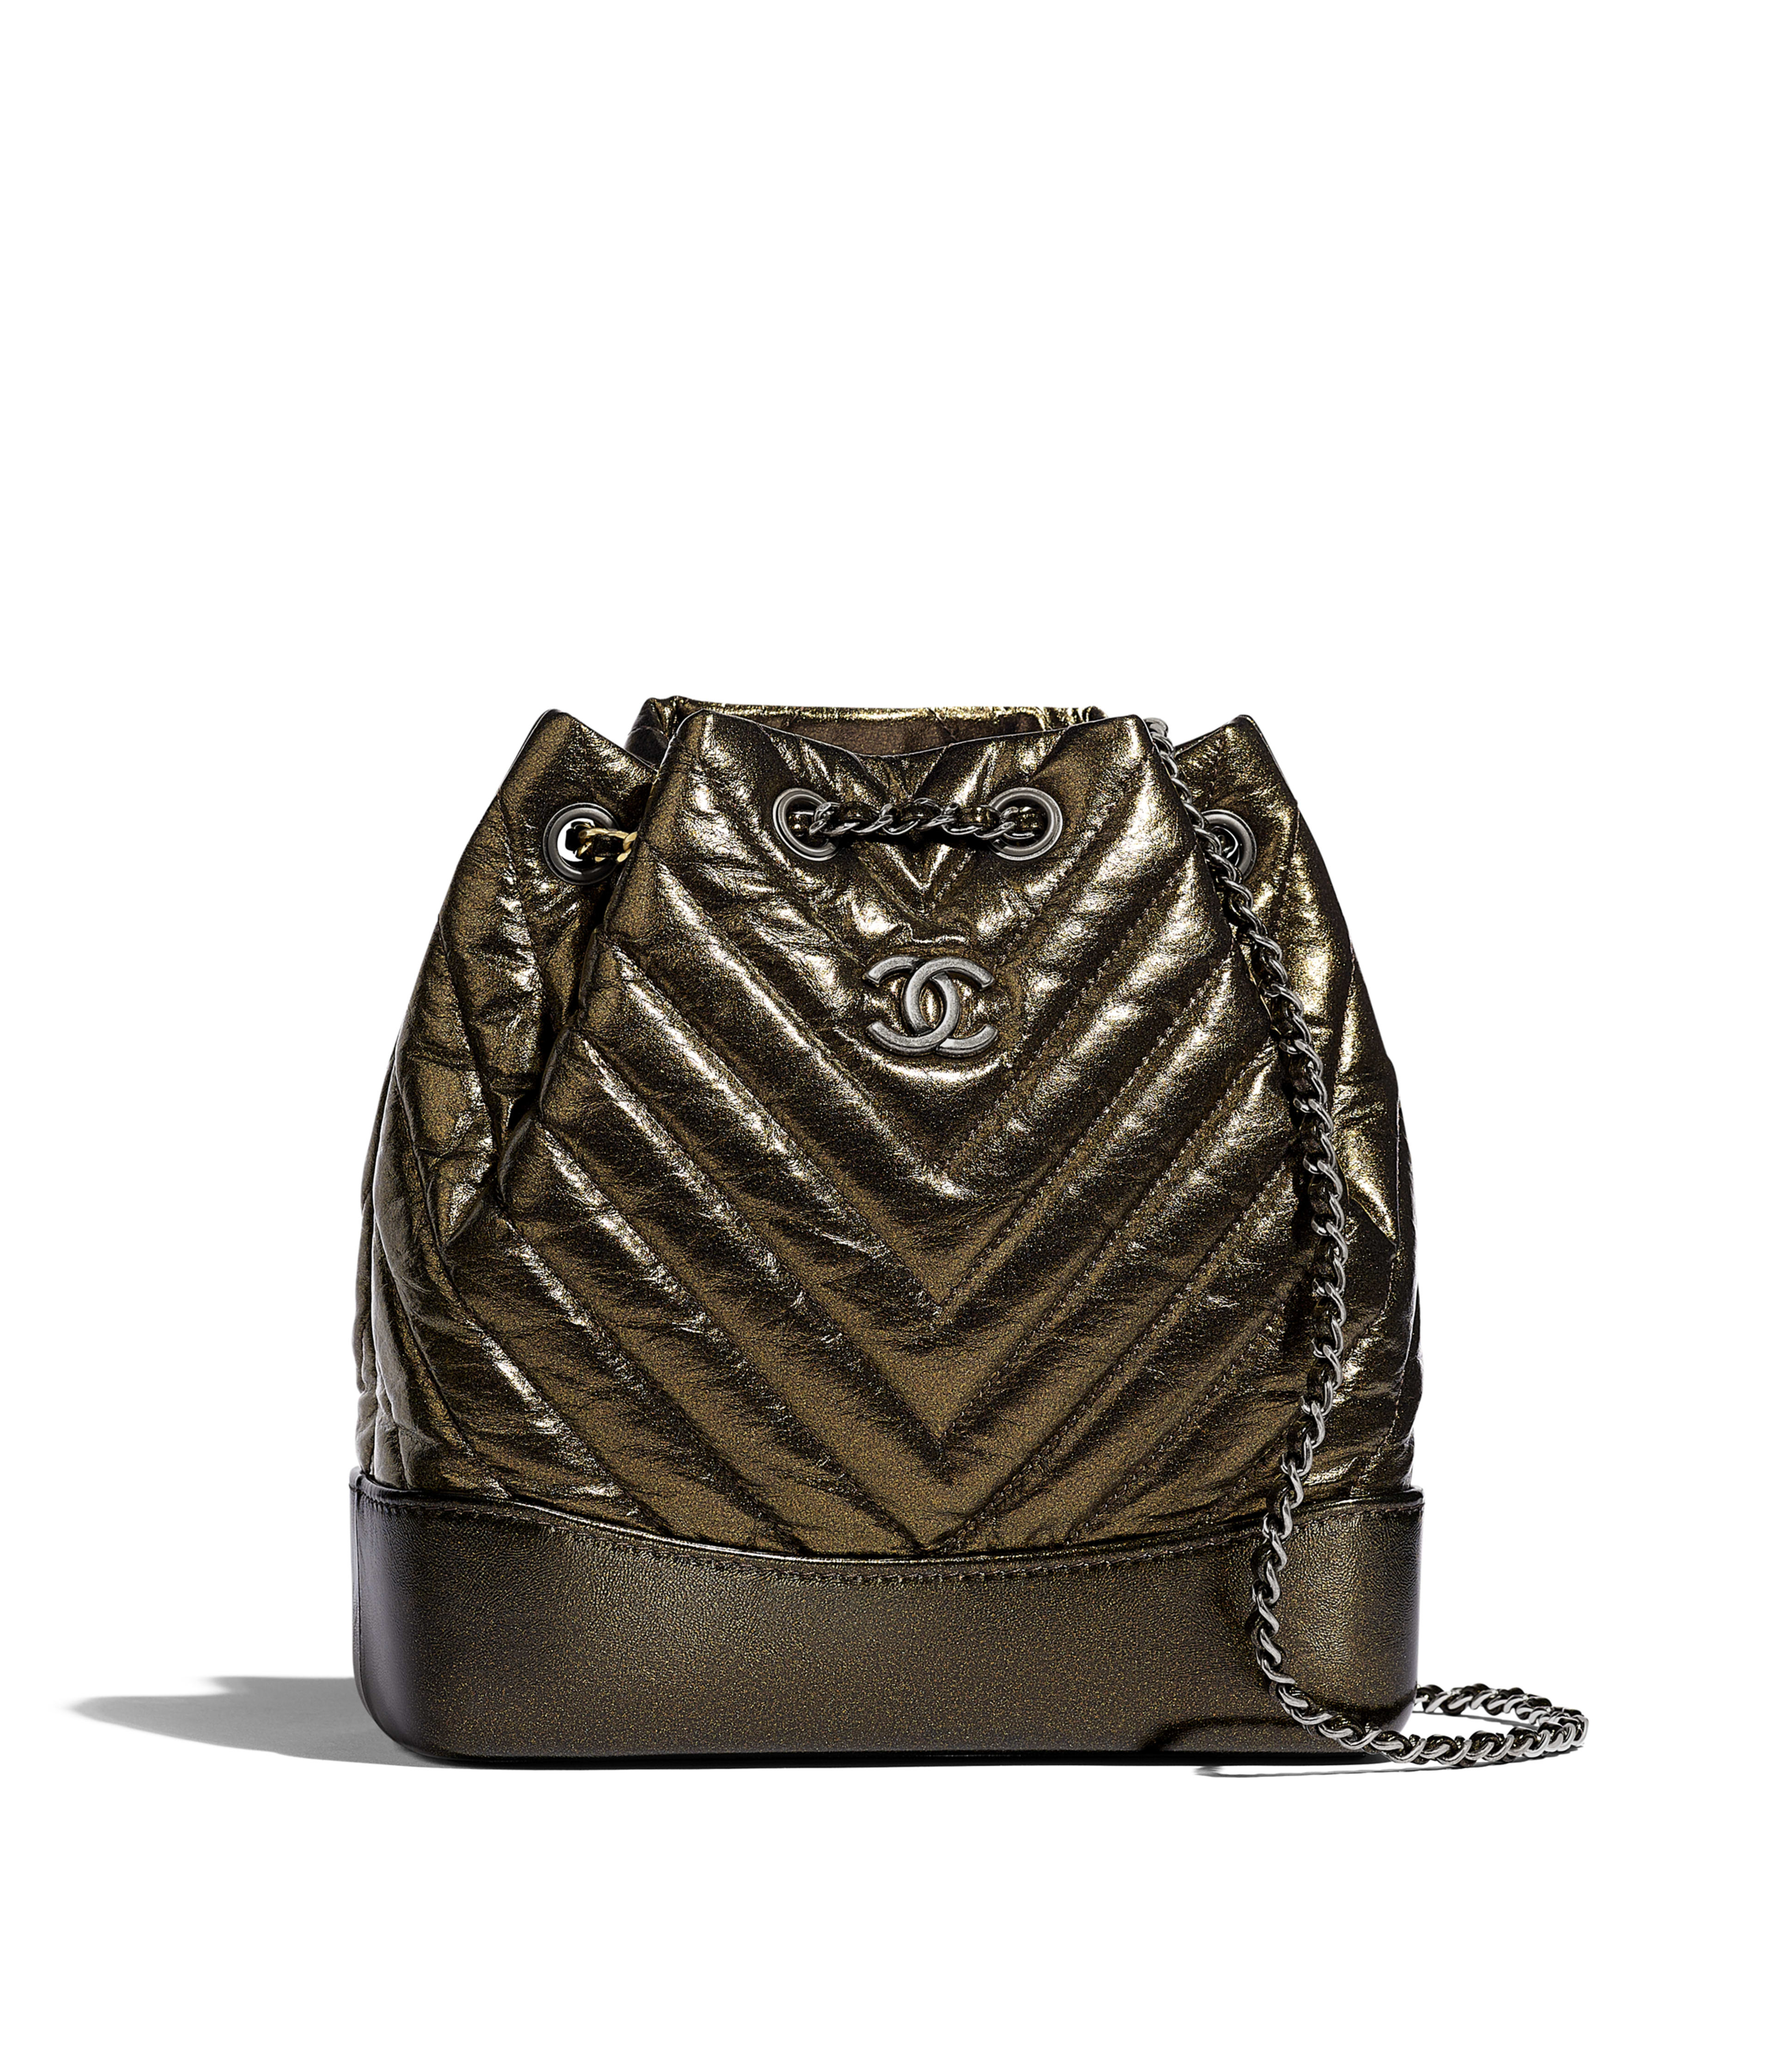 5df354506758 CHANEL'S GABRIELLE Small Backpack Aged Calfskin, Silver-Tone & Gold-Tone  Metal, Gold Ref. A94485B00877N4779